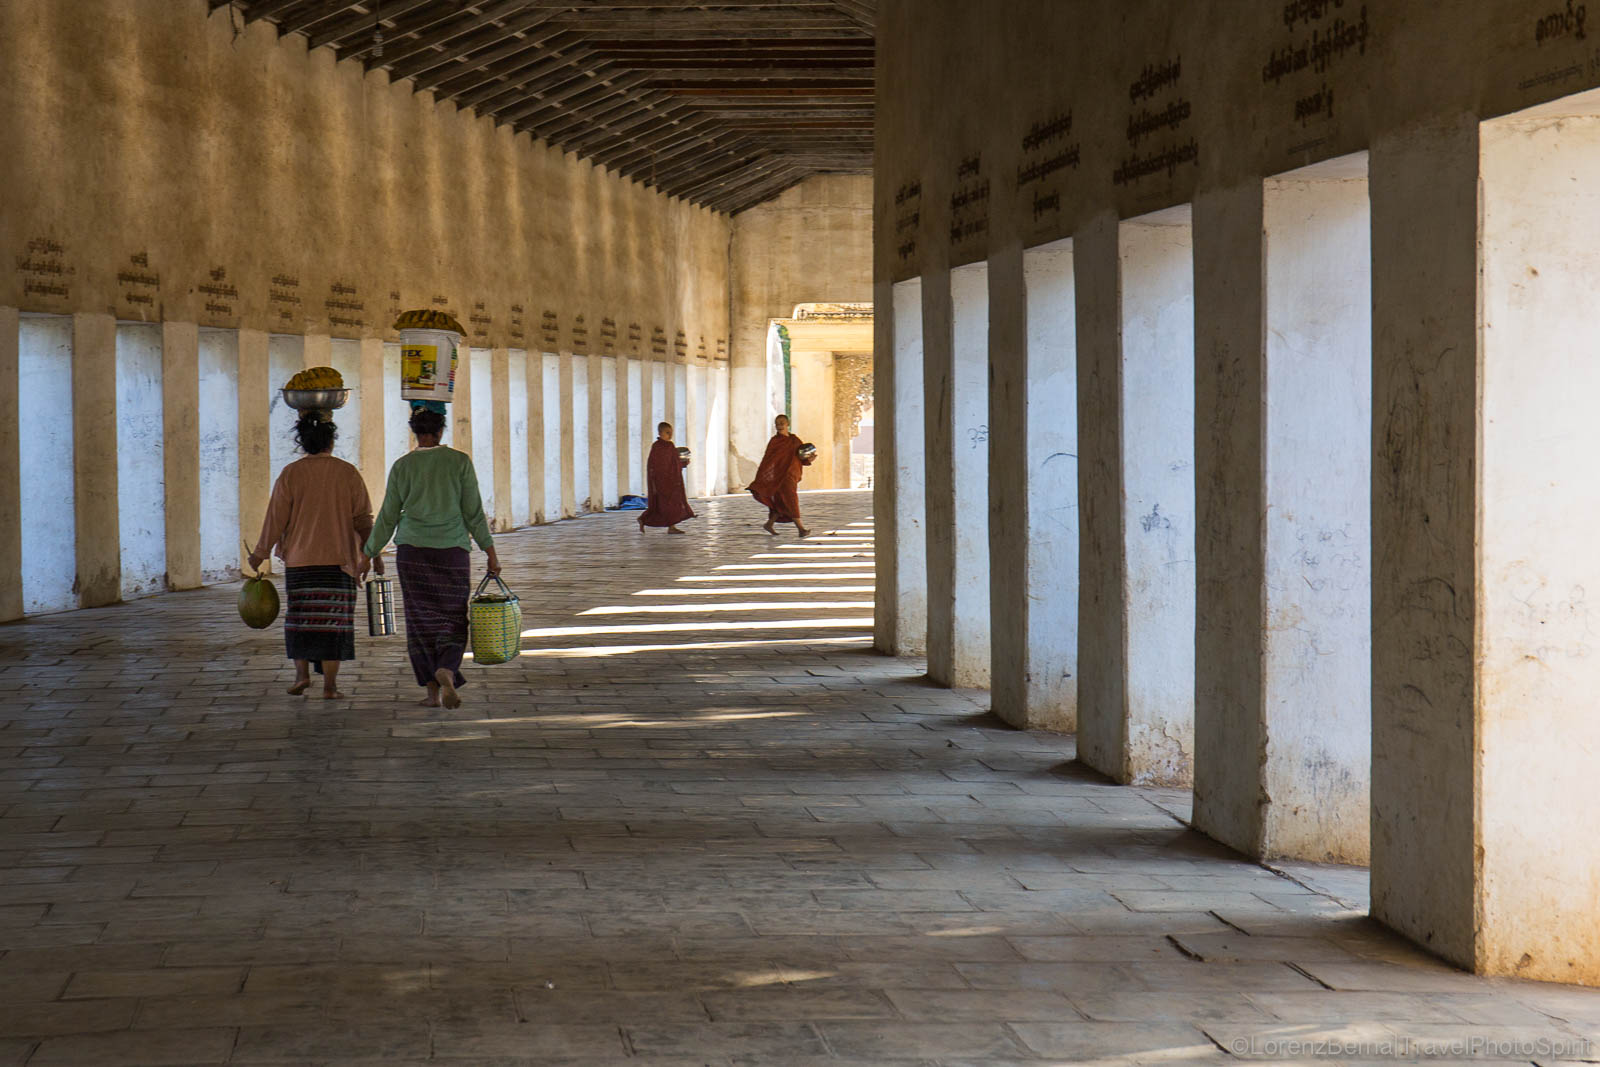 Local people and monks in the long walkway leading to Shwezigon Pagoda.